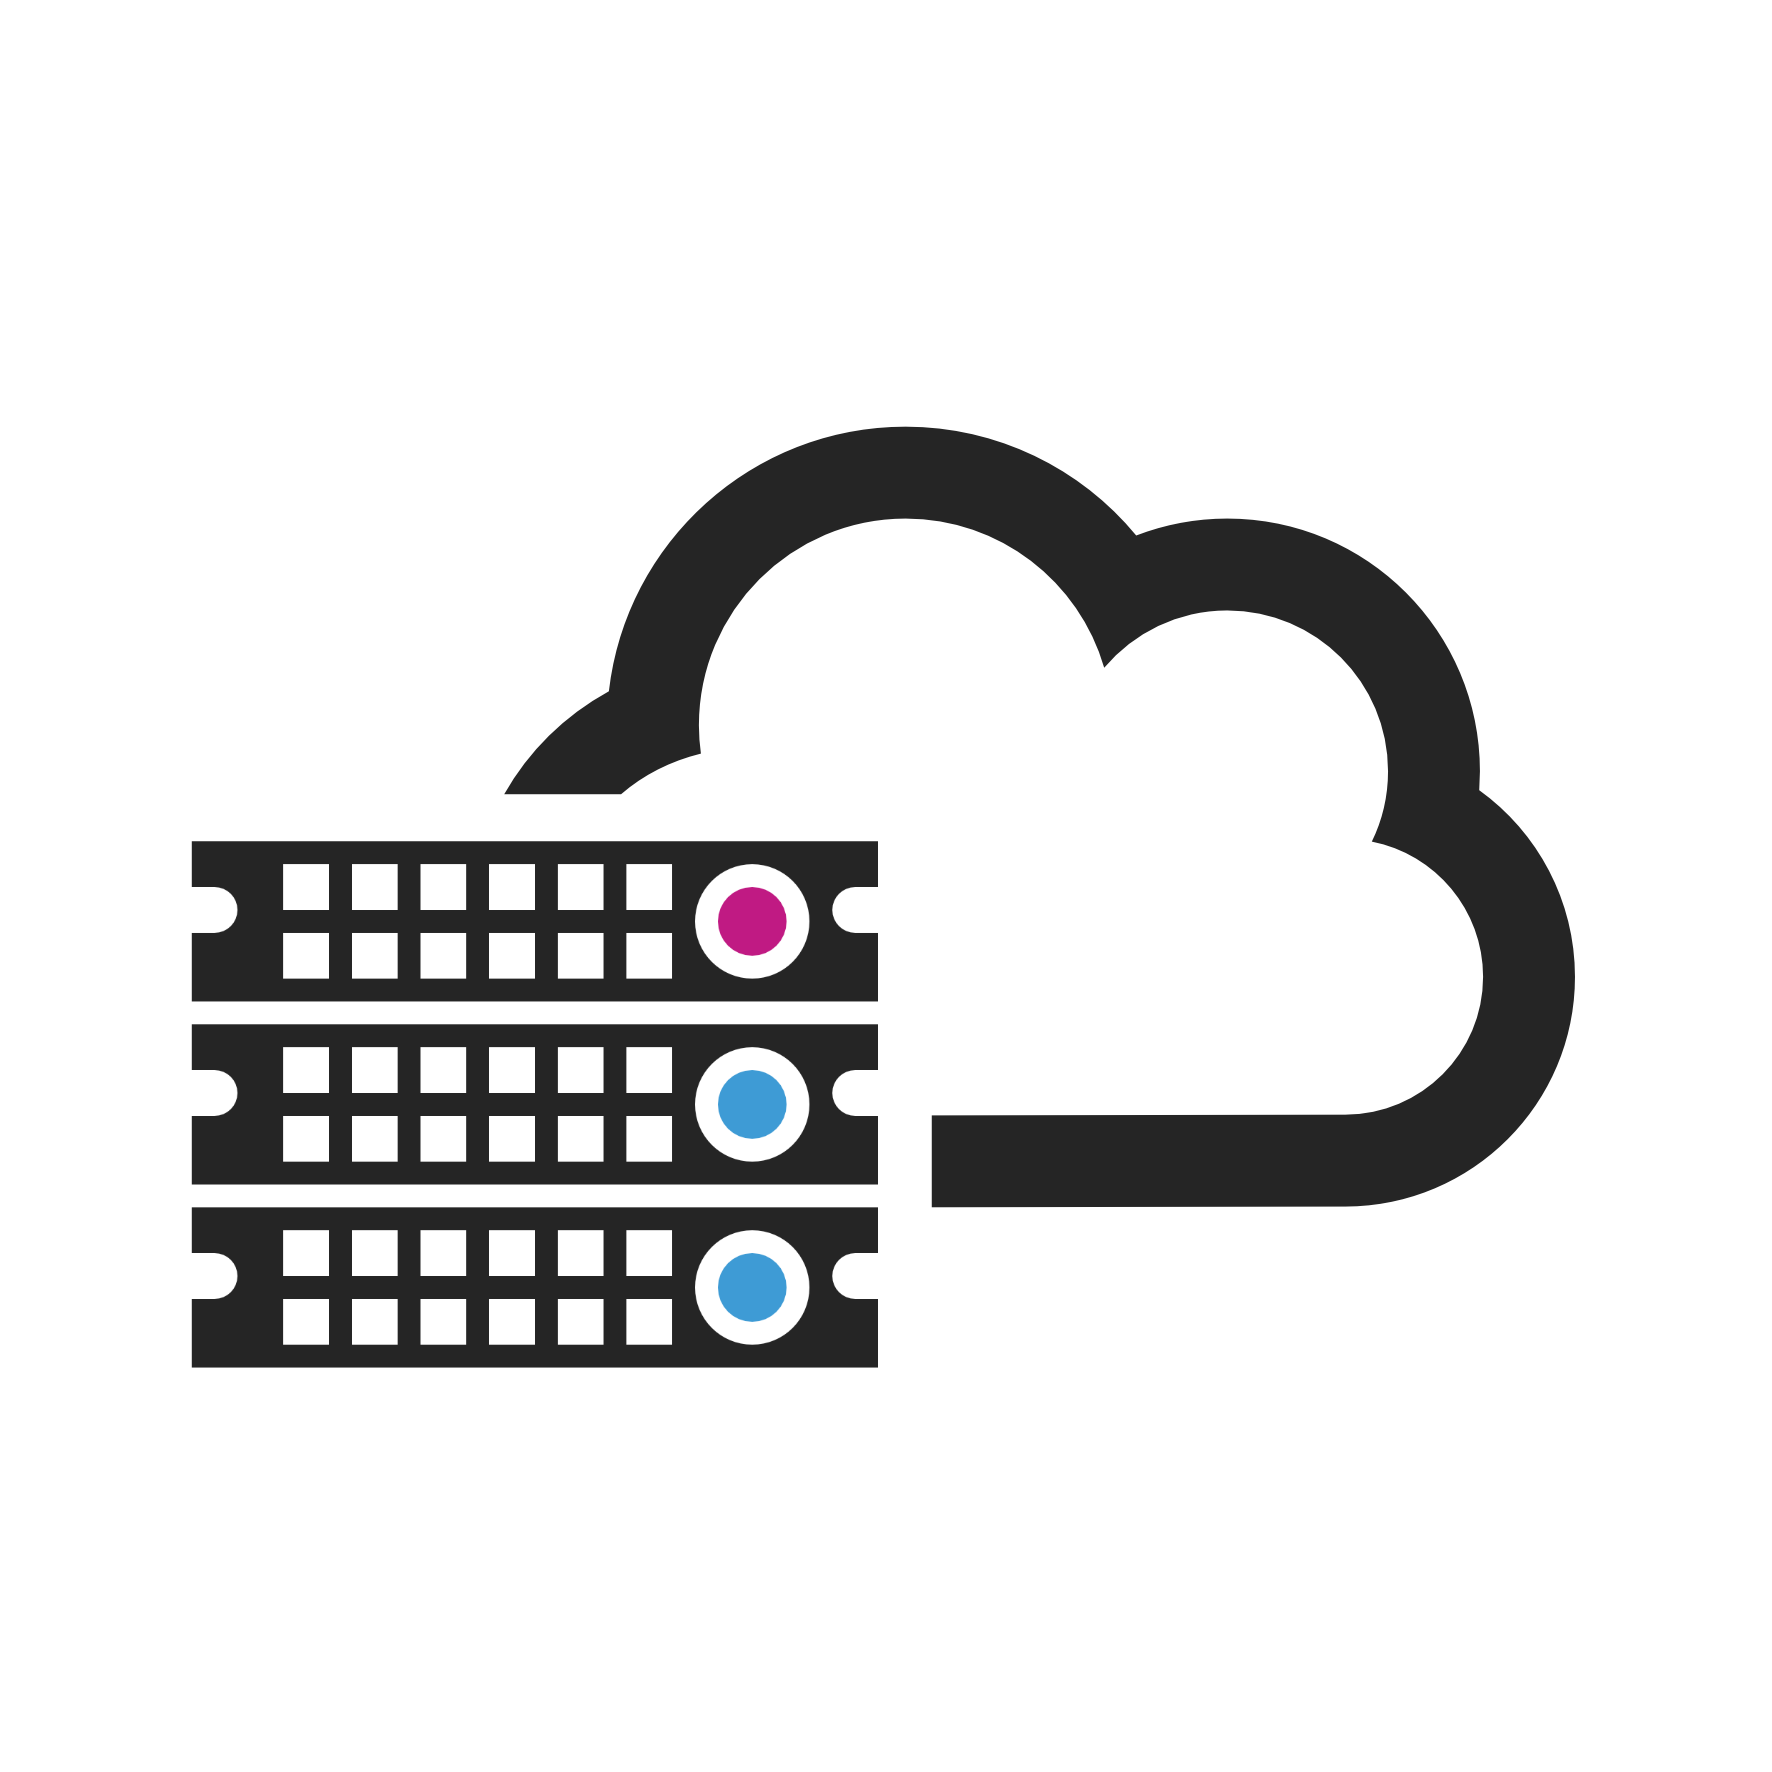 Cloud Hosted - Xavo provides the software including 3rd-level support. Customers can choose from a number of cloud providers and storage services.